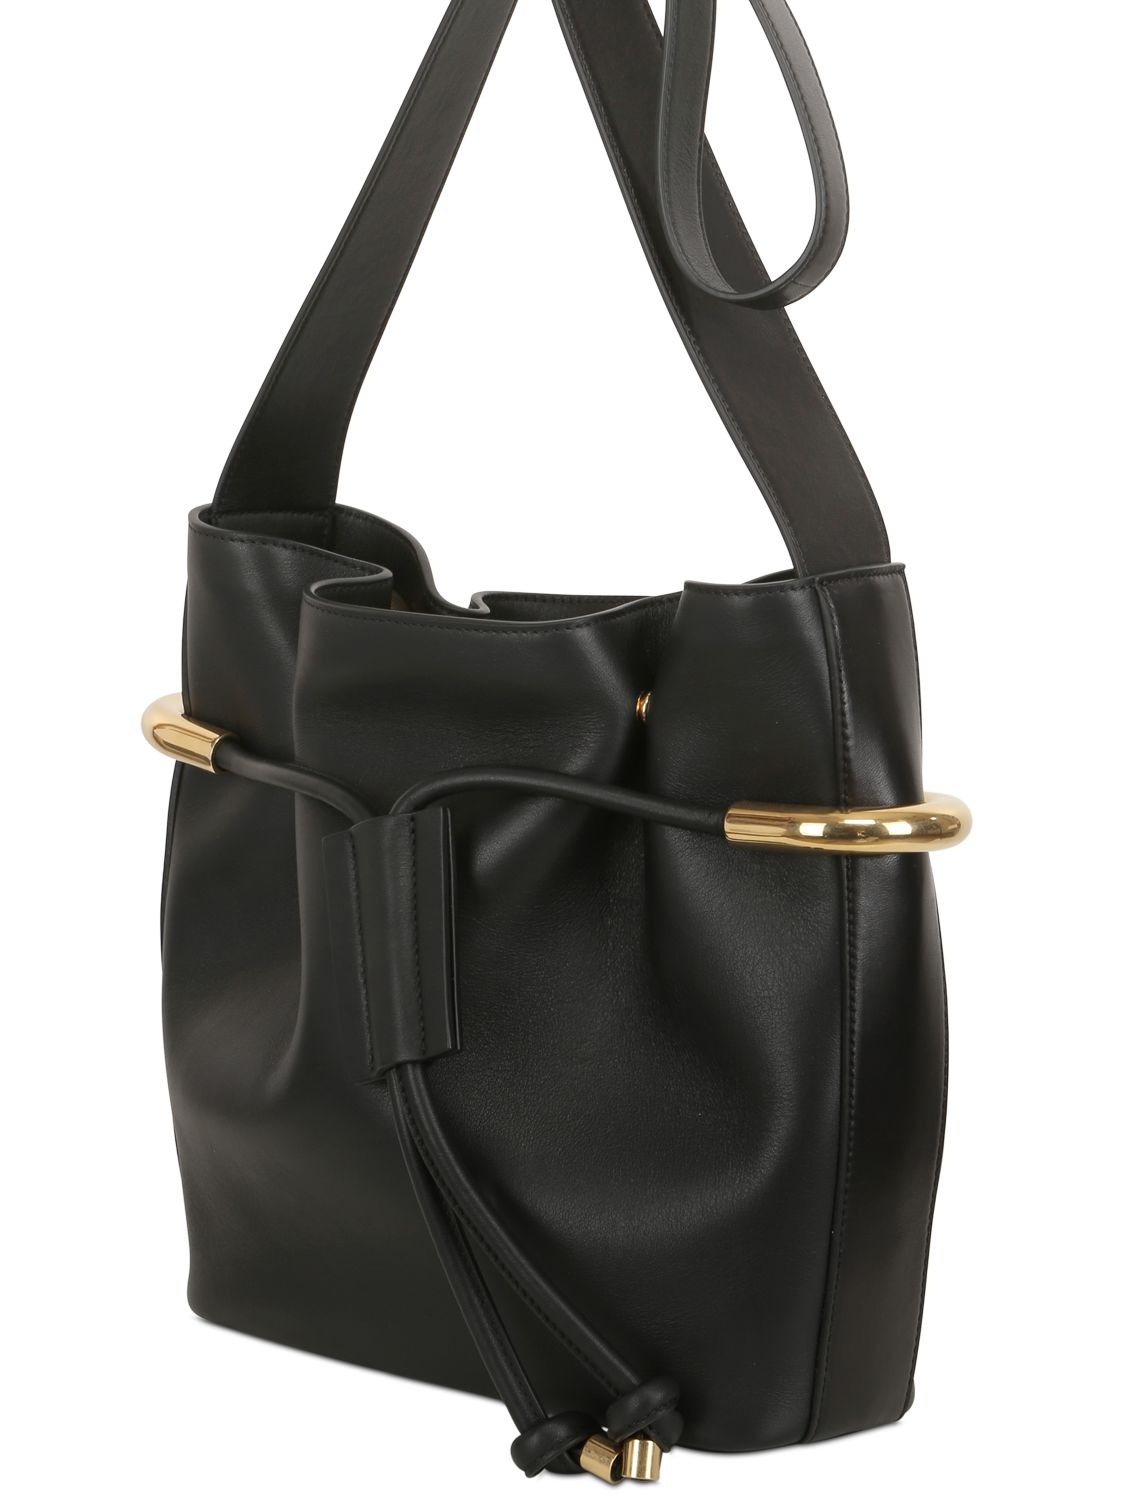 Chloé Medium Emma Smooth Leather Bucket Bag in Black - Lyst 8a01f13d5c